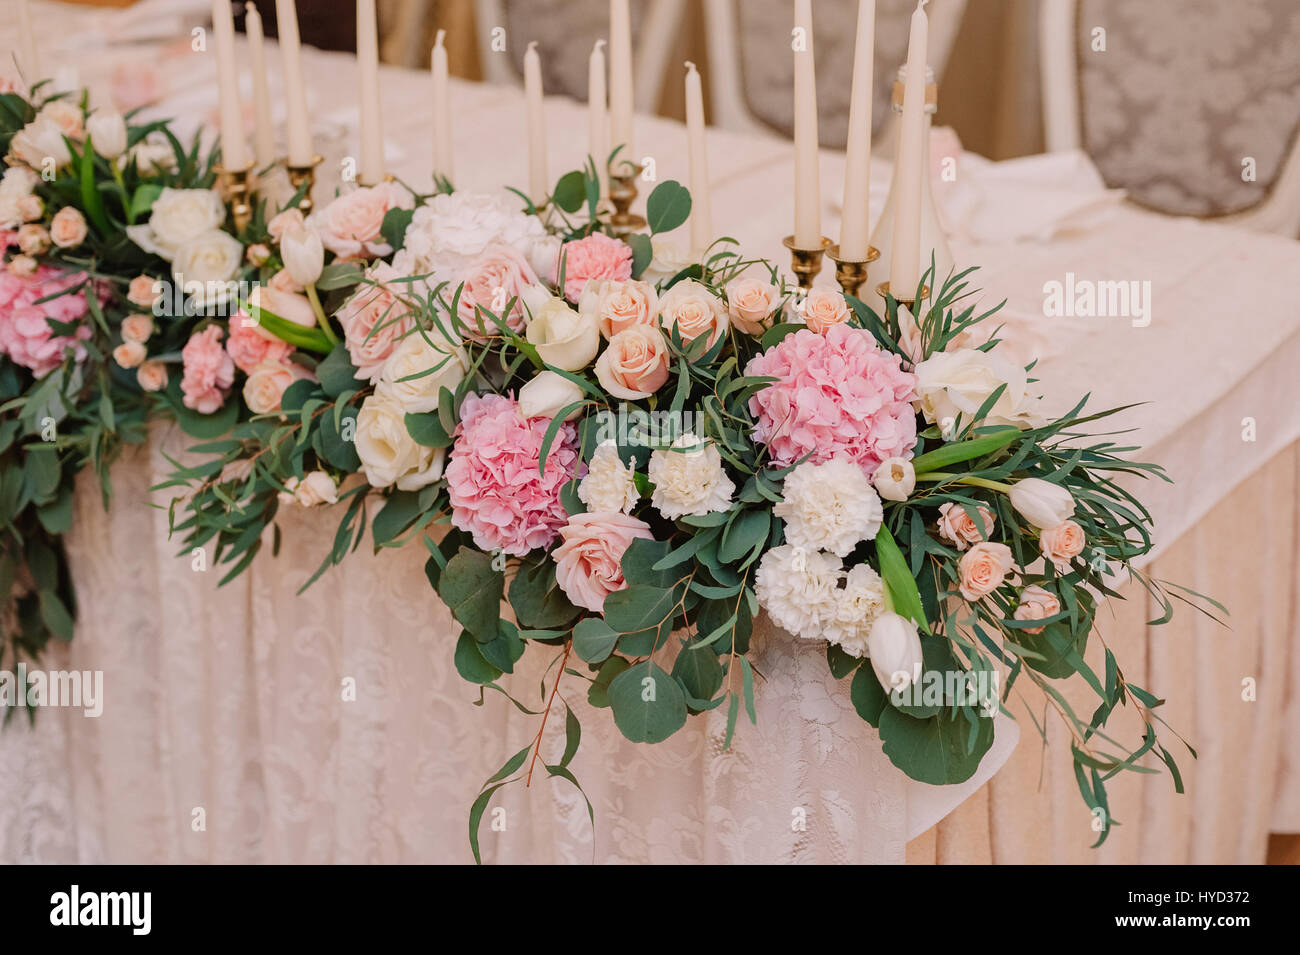 Wedding Table Decoration With Roses Carnations And Candles In The